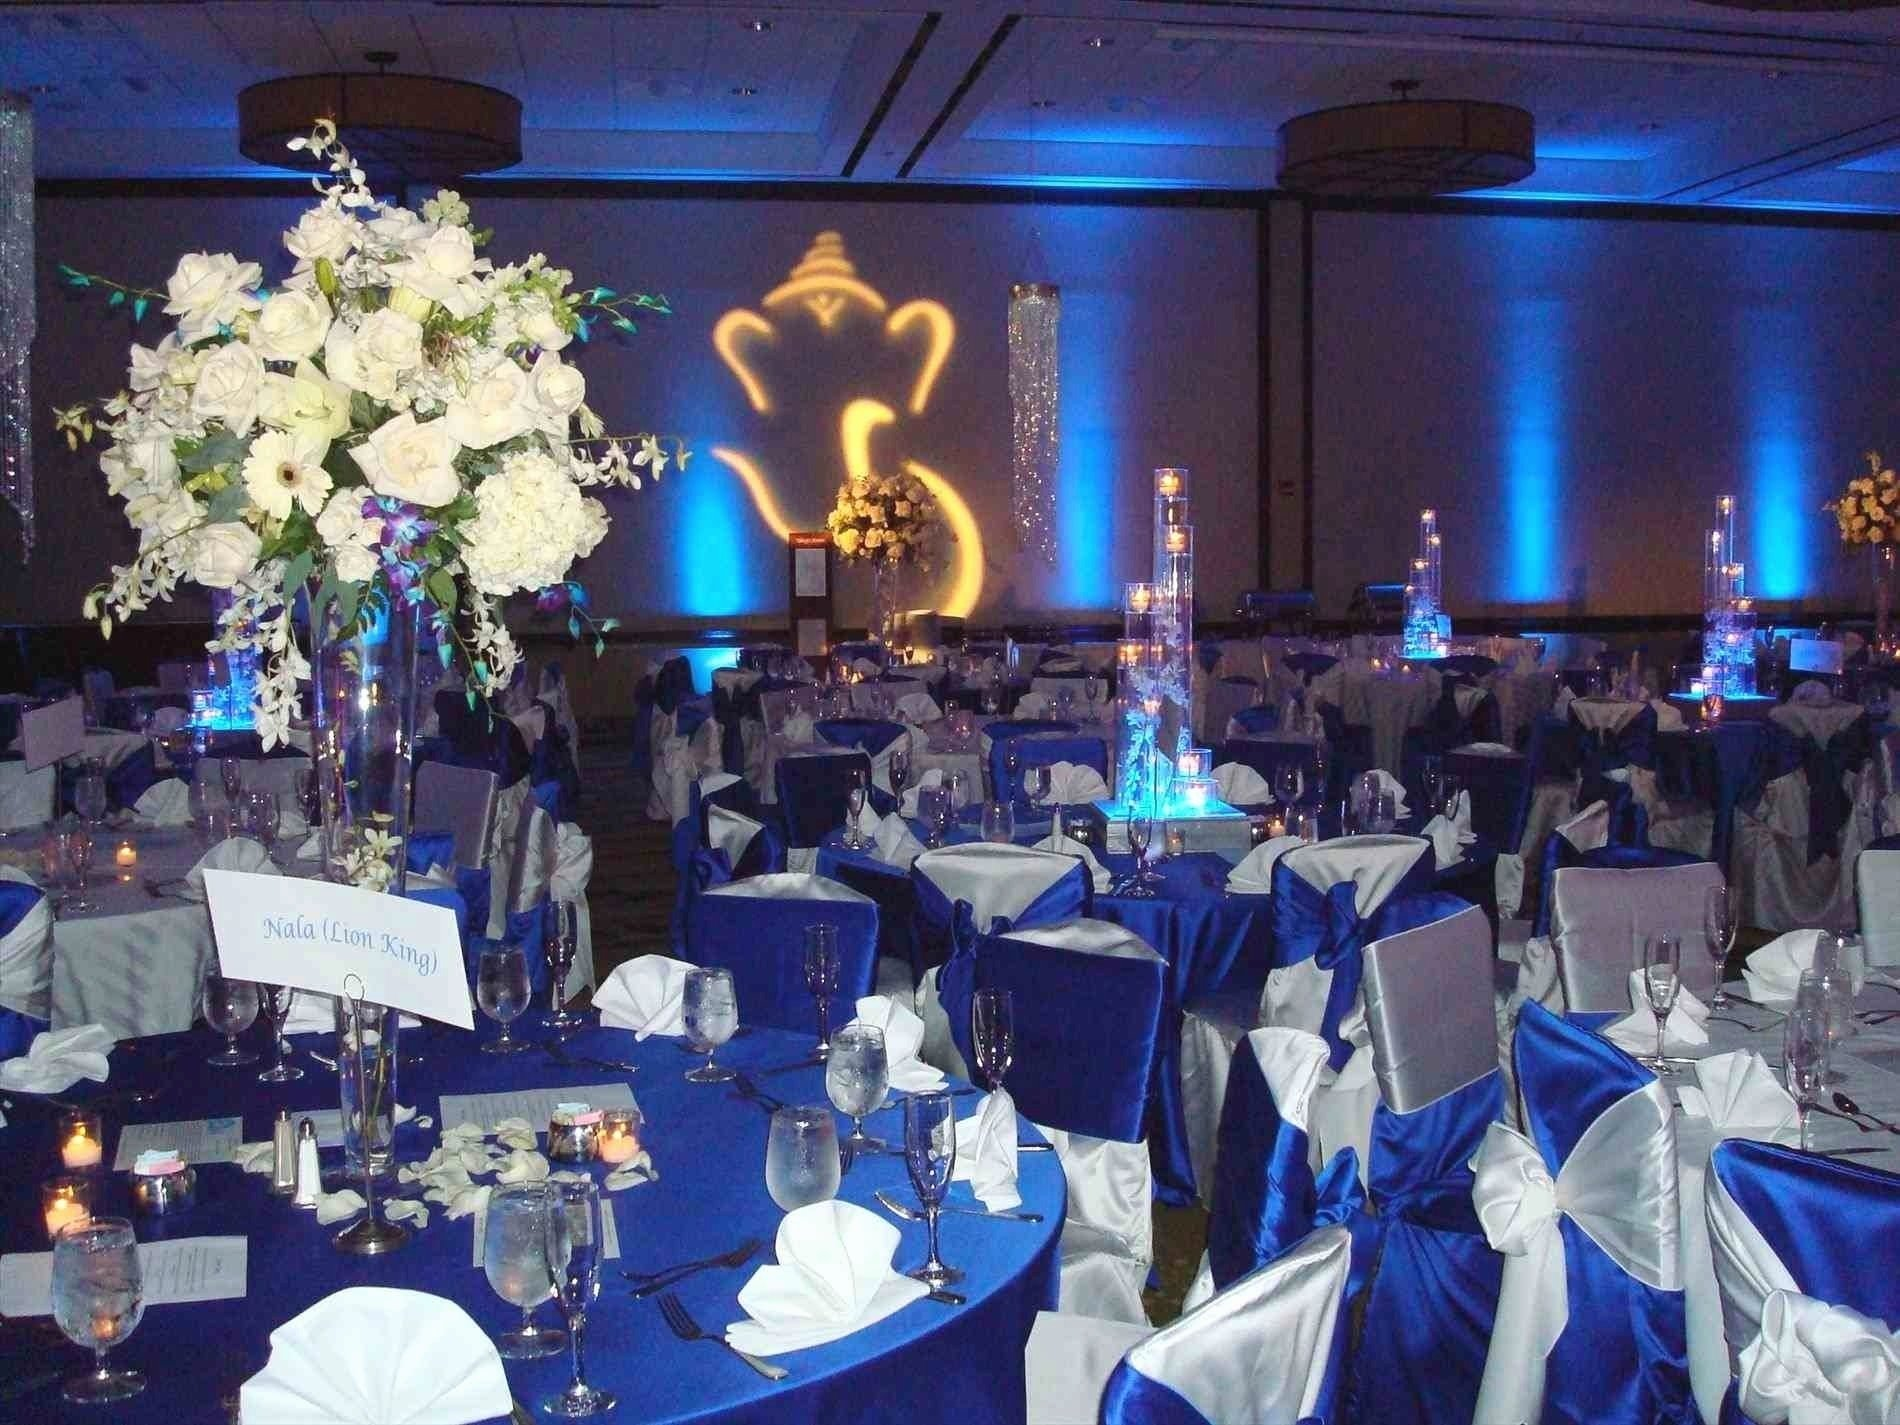 10 Lovable Royal Blue And Silver Wedding Ideas royal blue and silver wedding decorations unique simple royal blue 1